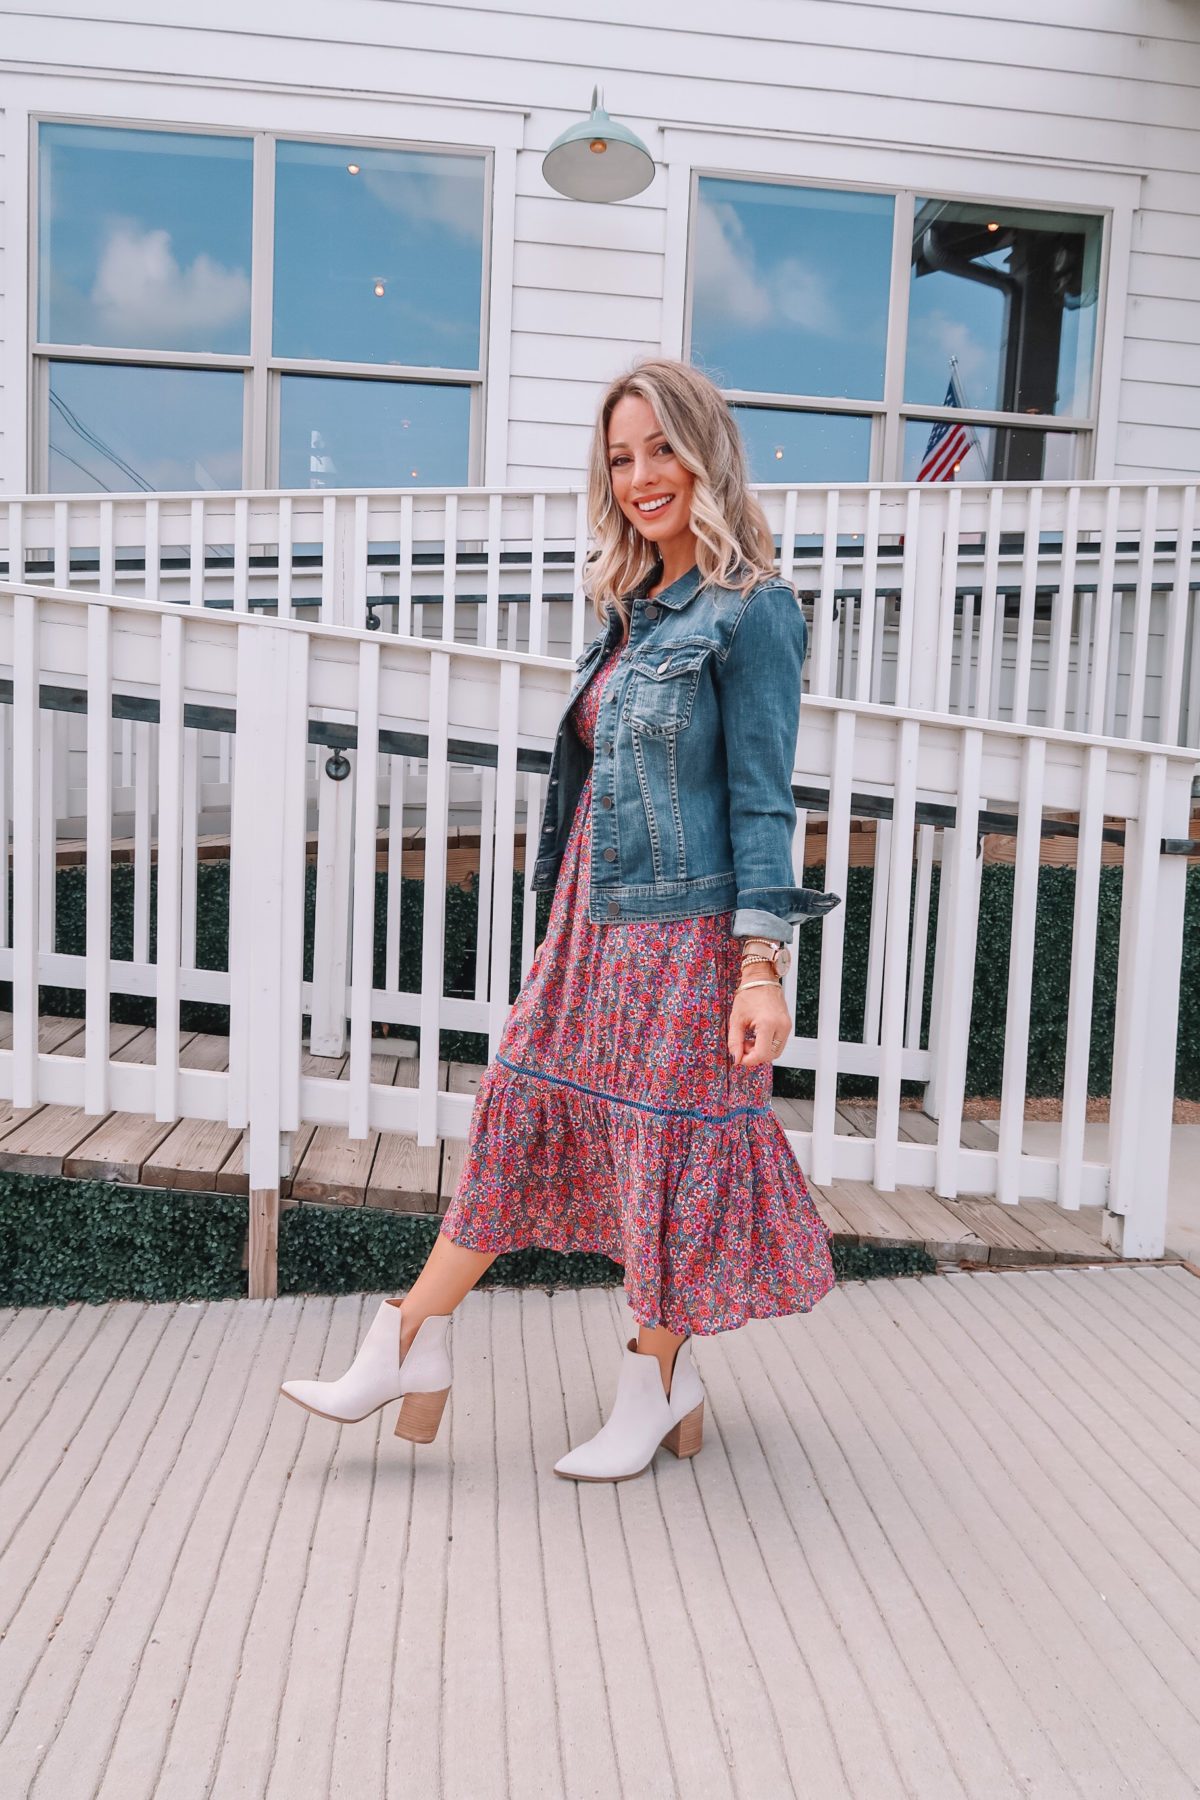 Outfits Lately, Floral Smocked Top Dress, Booties, Denim Jacket, Crossbody Bag